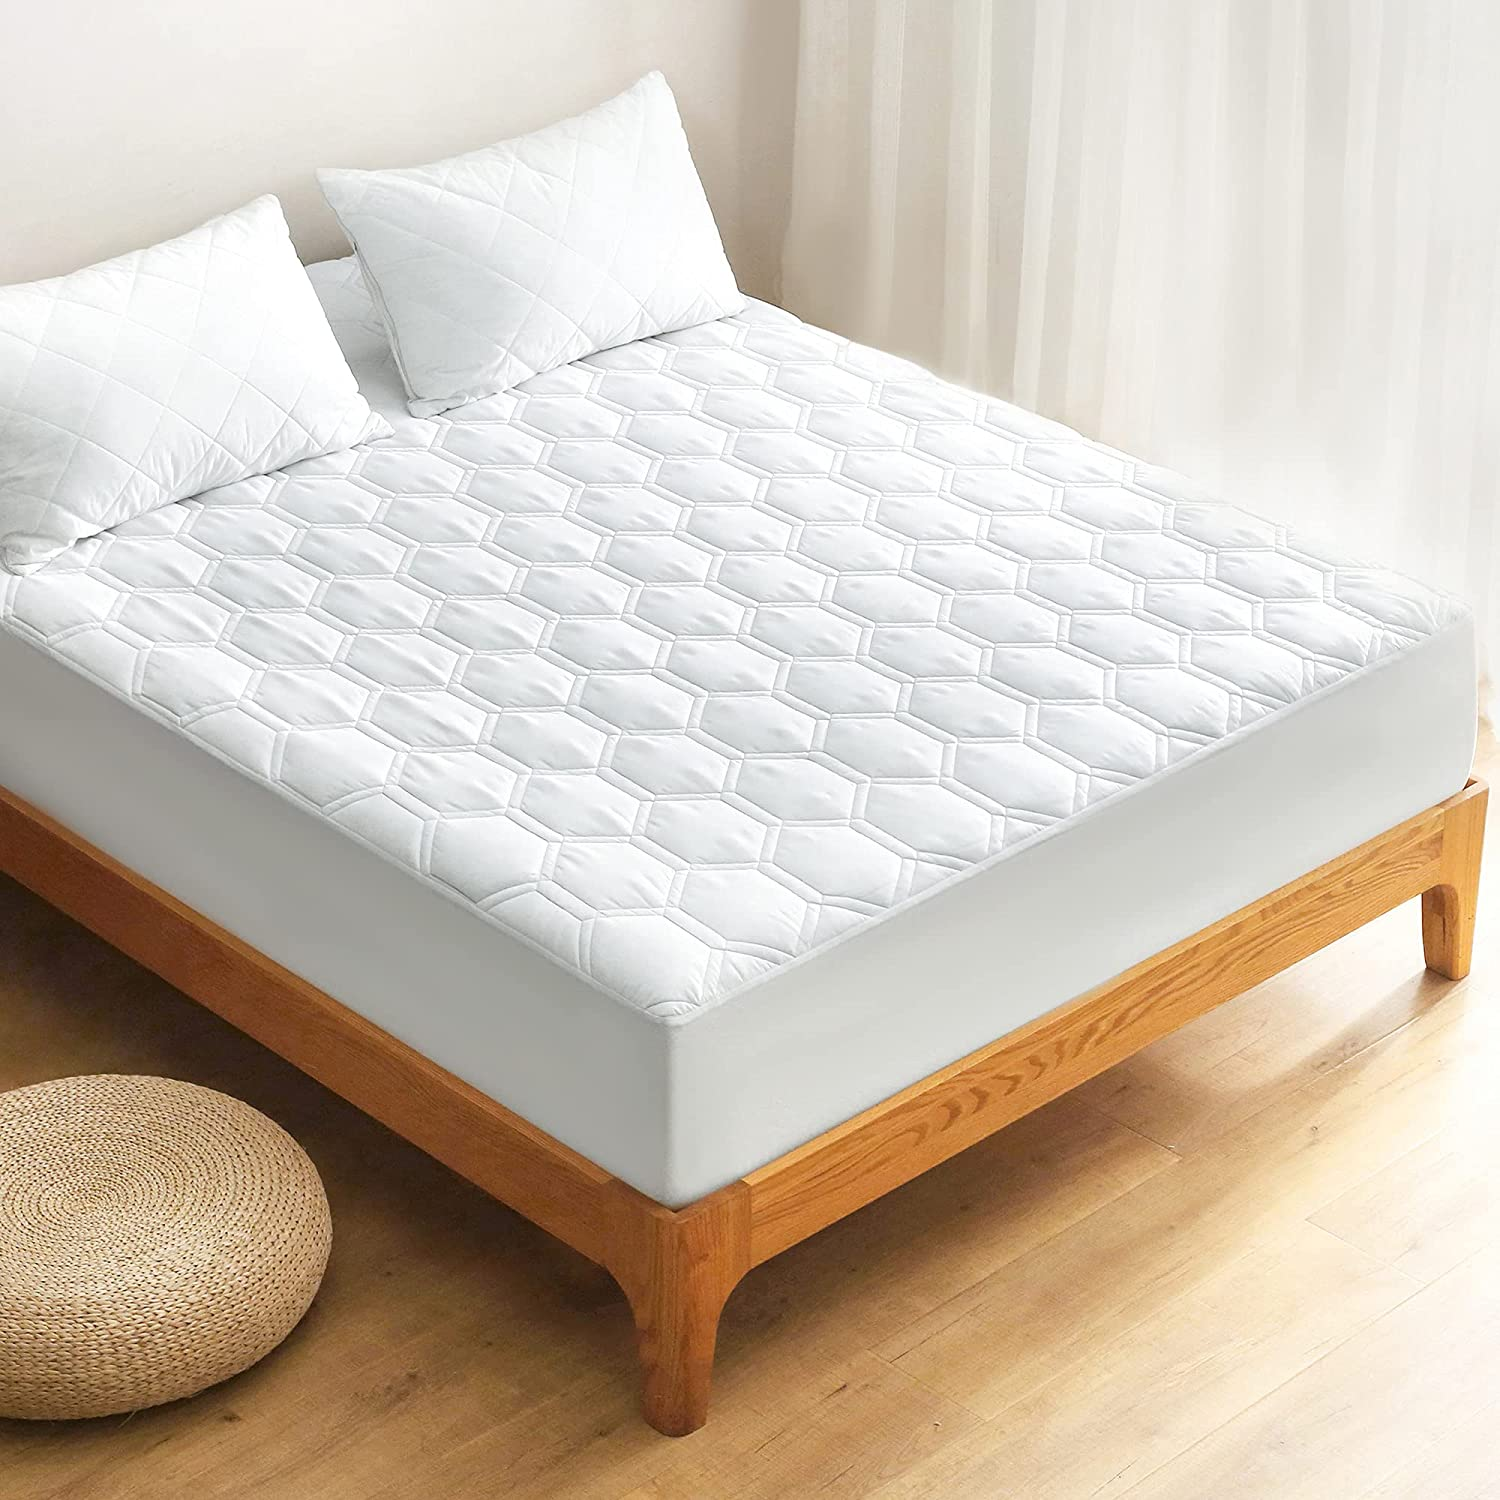 Waterproof Mattress Pad for Max 62% OFF Queen overseas Size Bed Mat Breathable